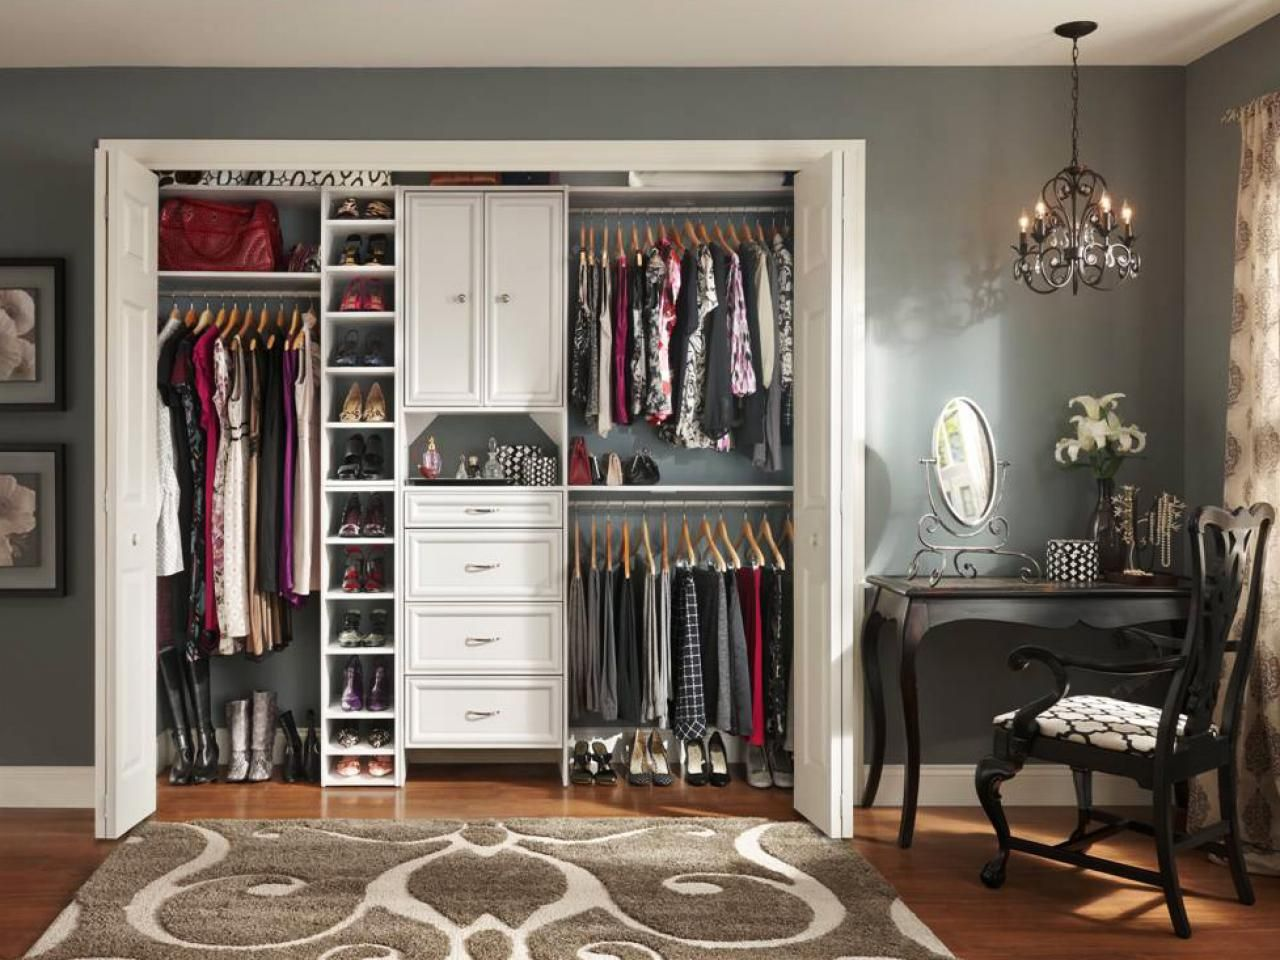 Uncategorized Closet Ideas For Small Bedroom best 25 small closet organization ideas on pinterest organizing stunning httpsmidcityeast comstunning